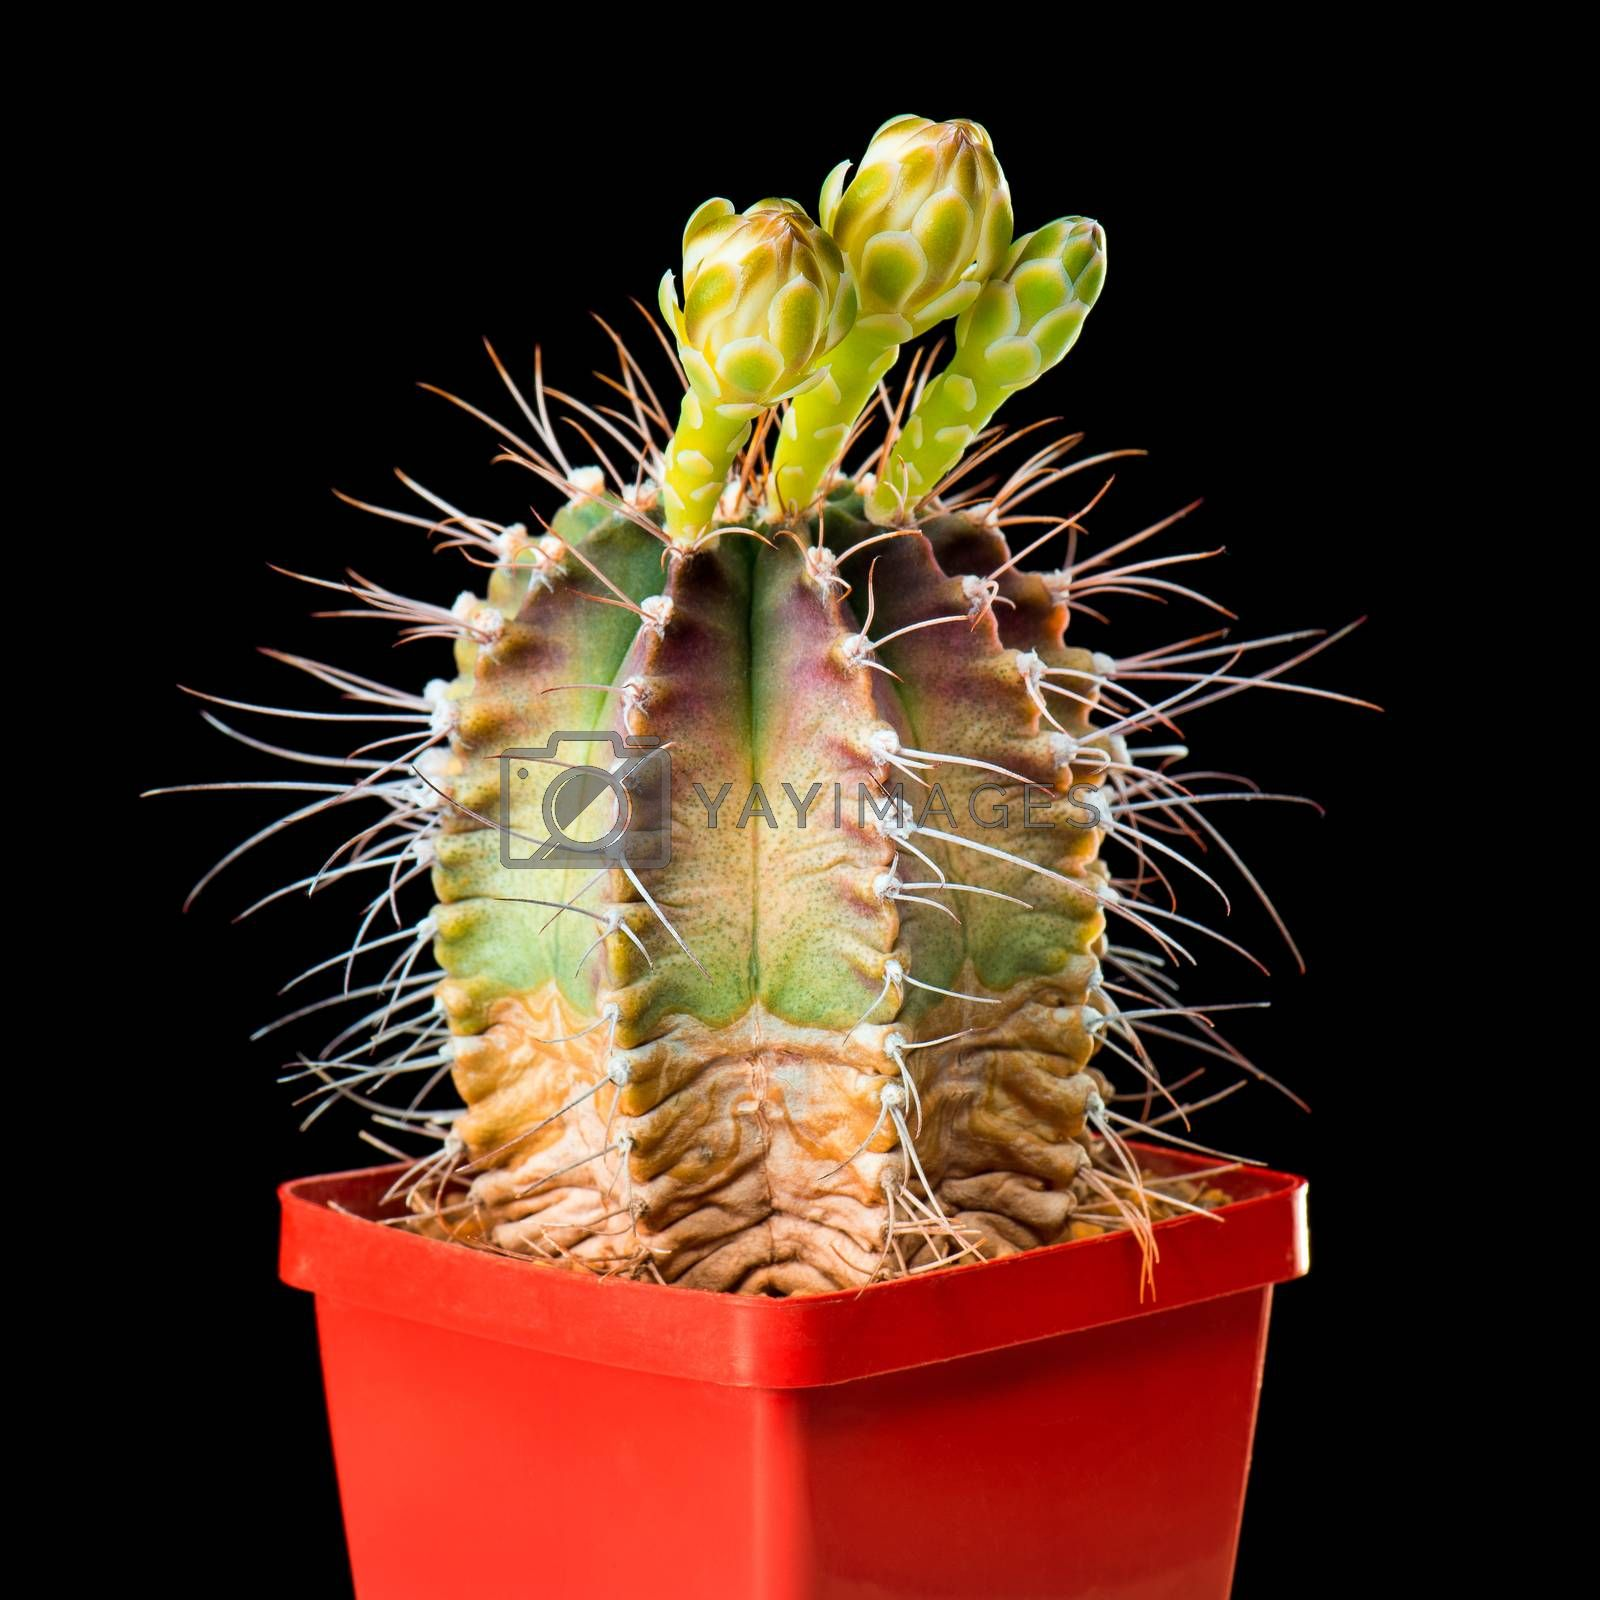 Beautiful Cactus Flowers in Flower Pot Blooming Isolated on Black Background. Gymnocalycium Flower buds with three blossoms.